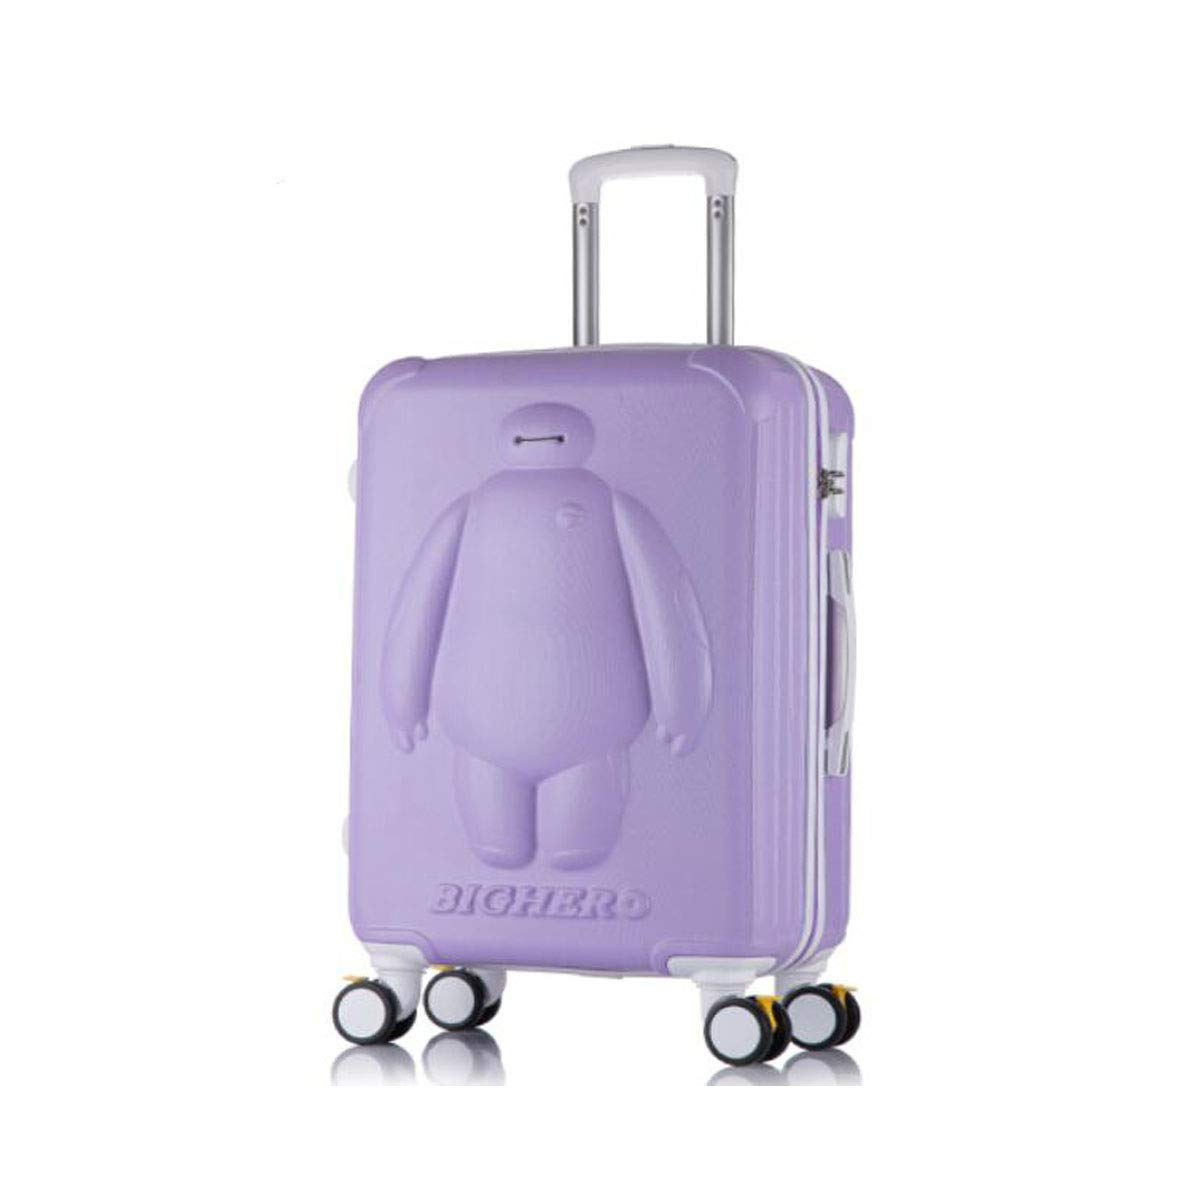 Aishanghuayi Suitcase for Childrens Password Students Cute Boarding Suitcase 33 22 46 Color : Purple, Size : 161023 inch Size Color Pink cm